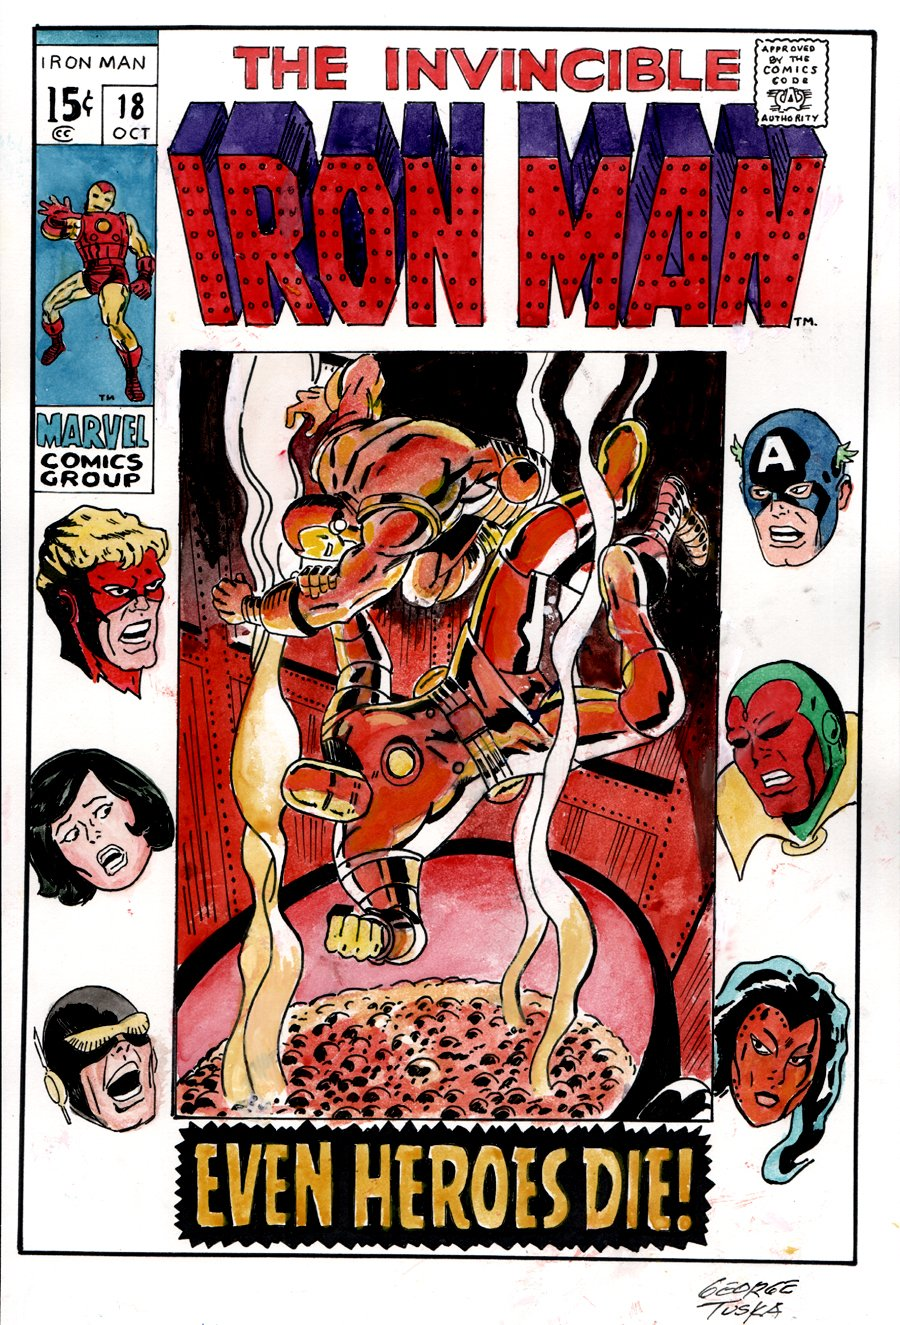 Iron Man #18 Hand Colored Cover Recreation